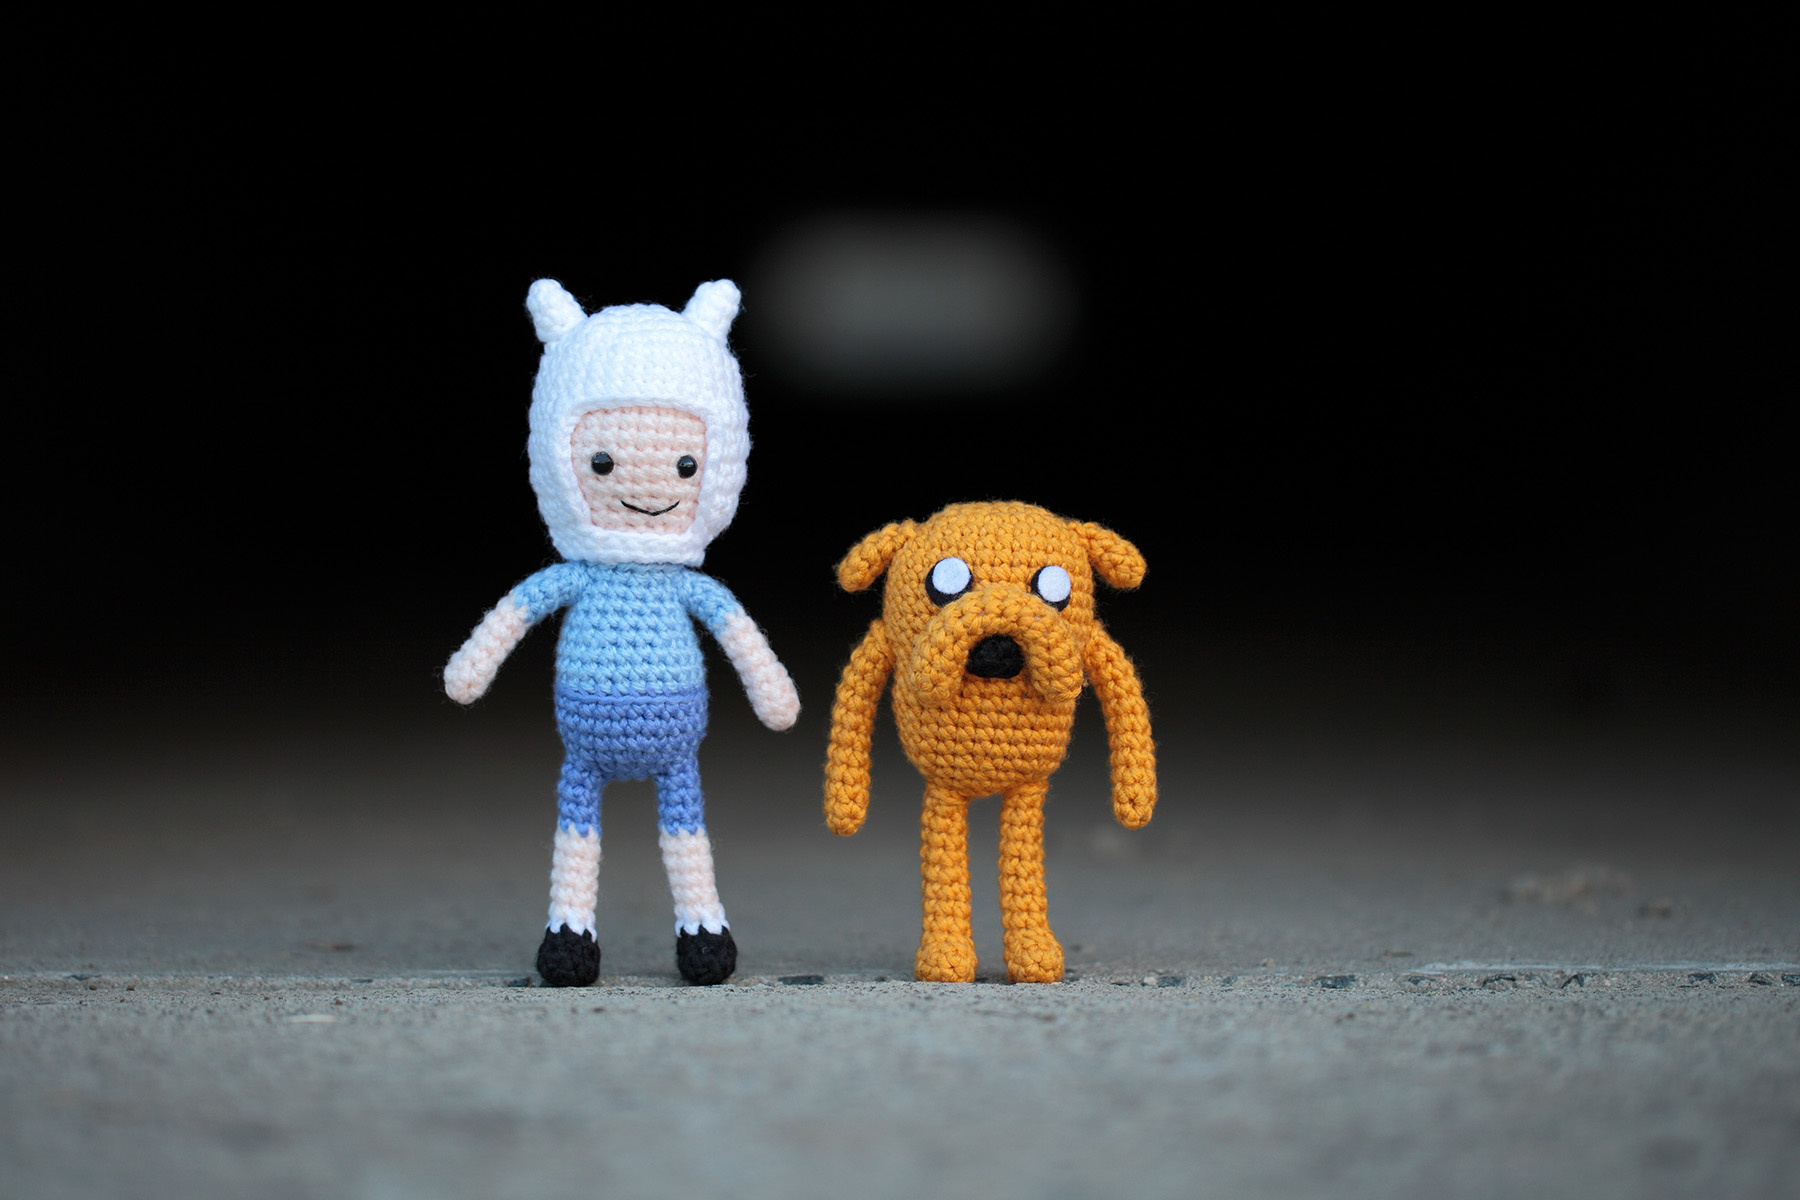 Finn and Jake from Adventure Time